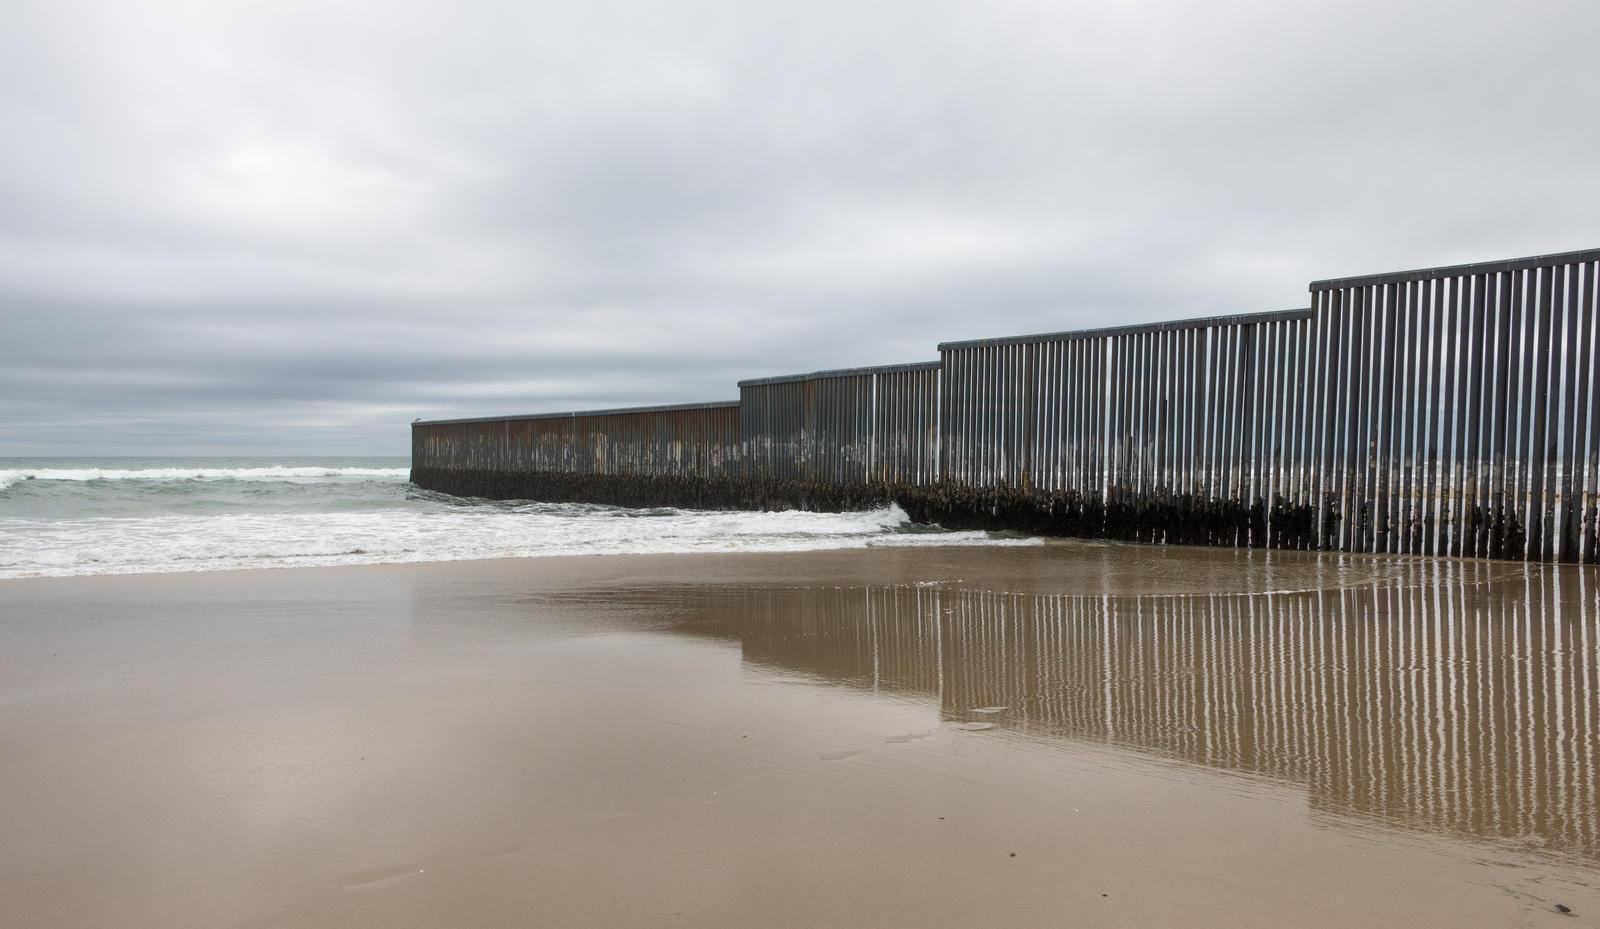 Mexico-US border wall at Tijuana, Mexico